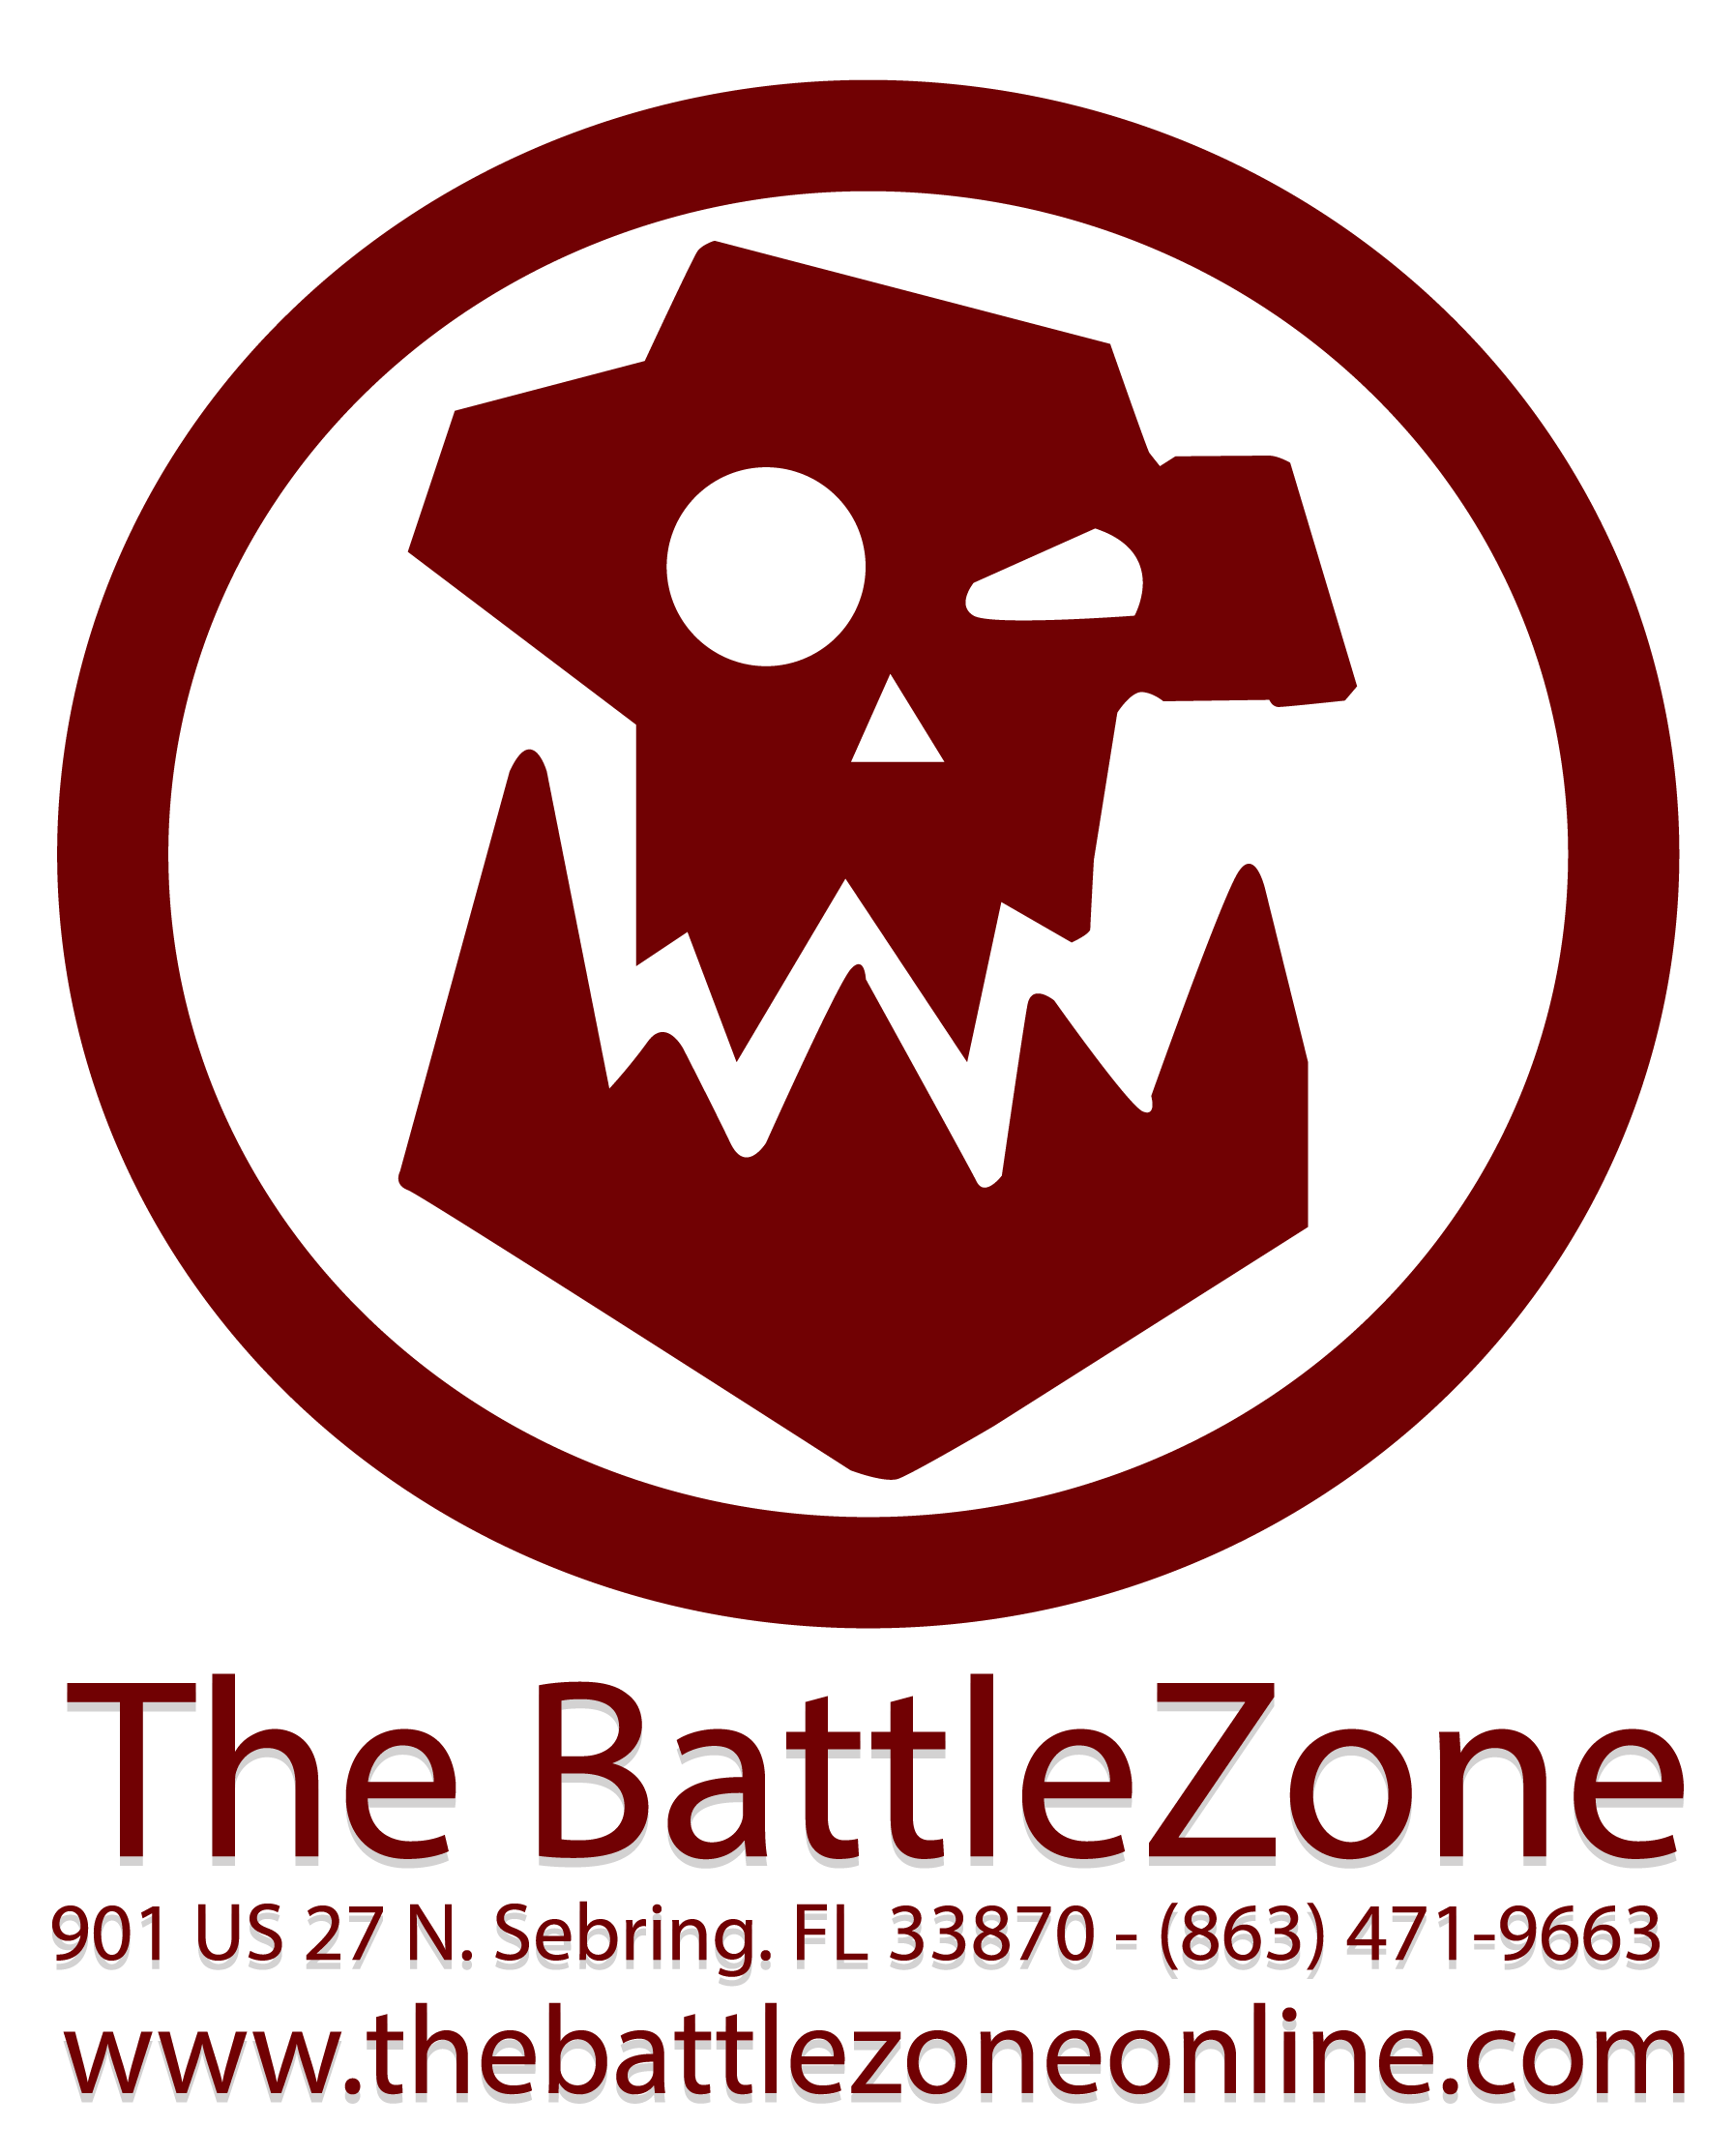 The BattleZone